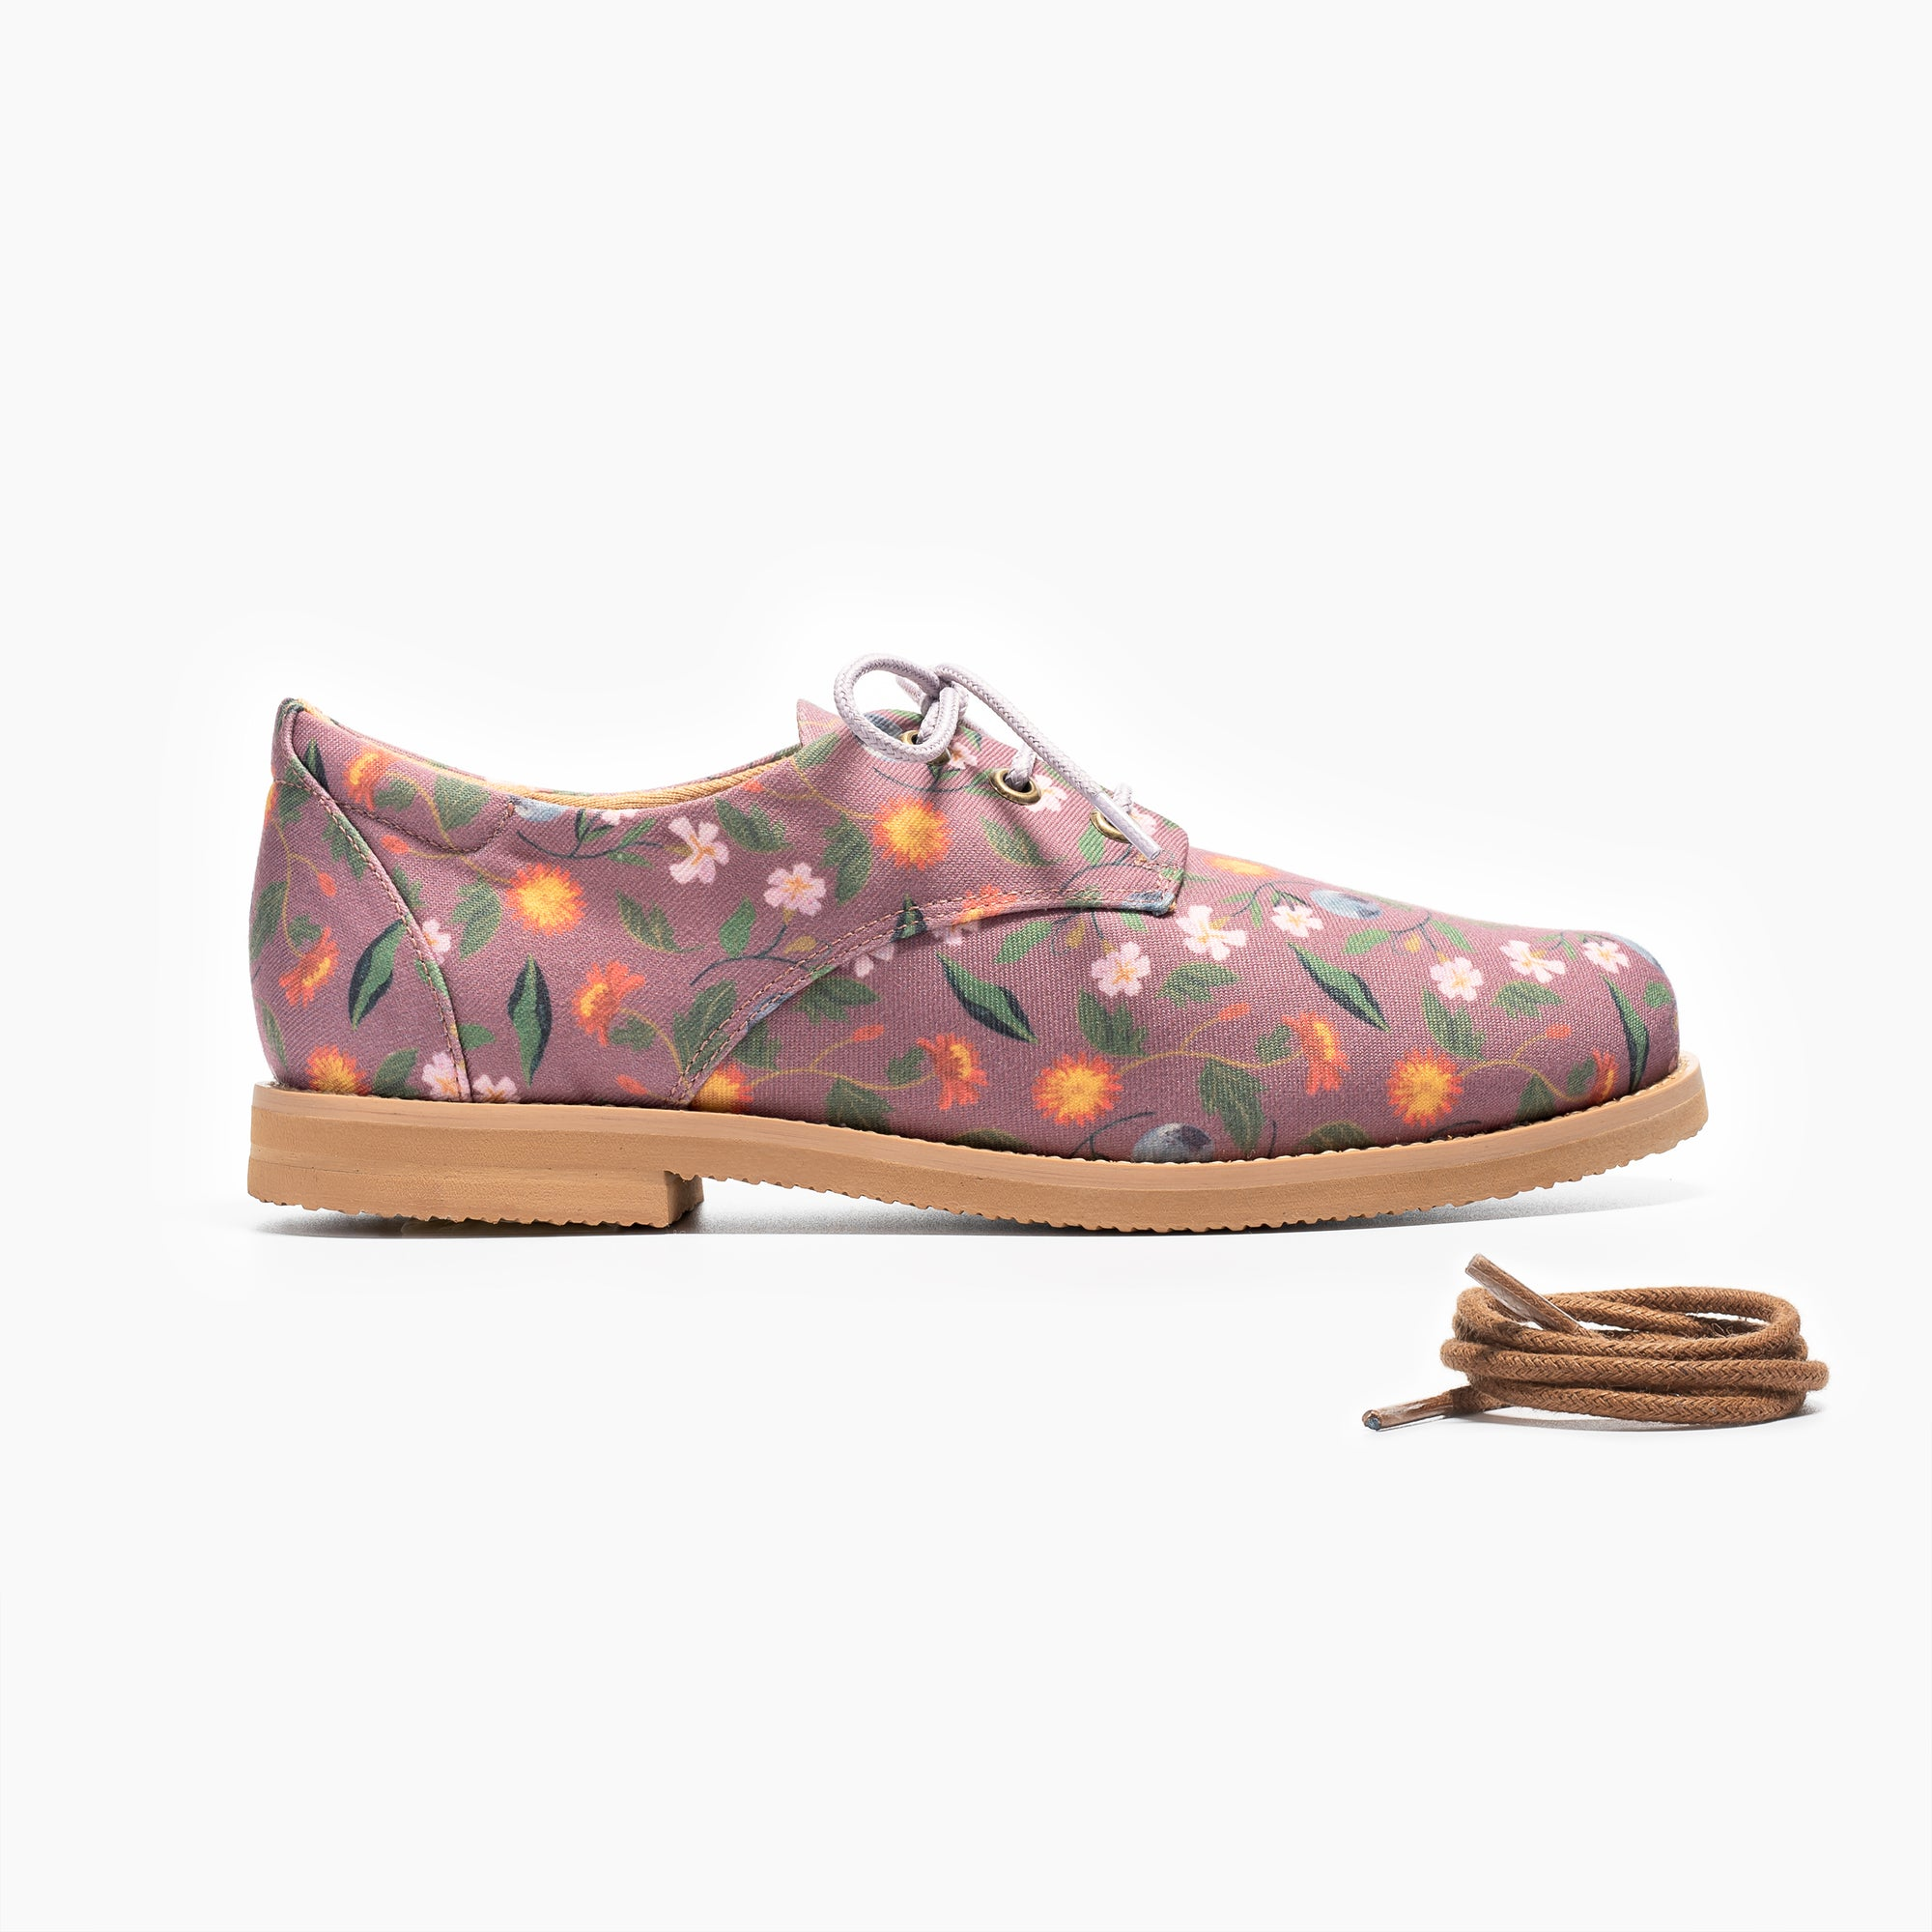 SCORPIO OXFORD - Insecta Shoes